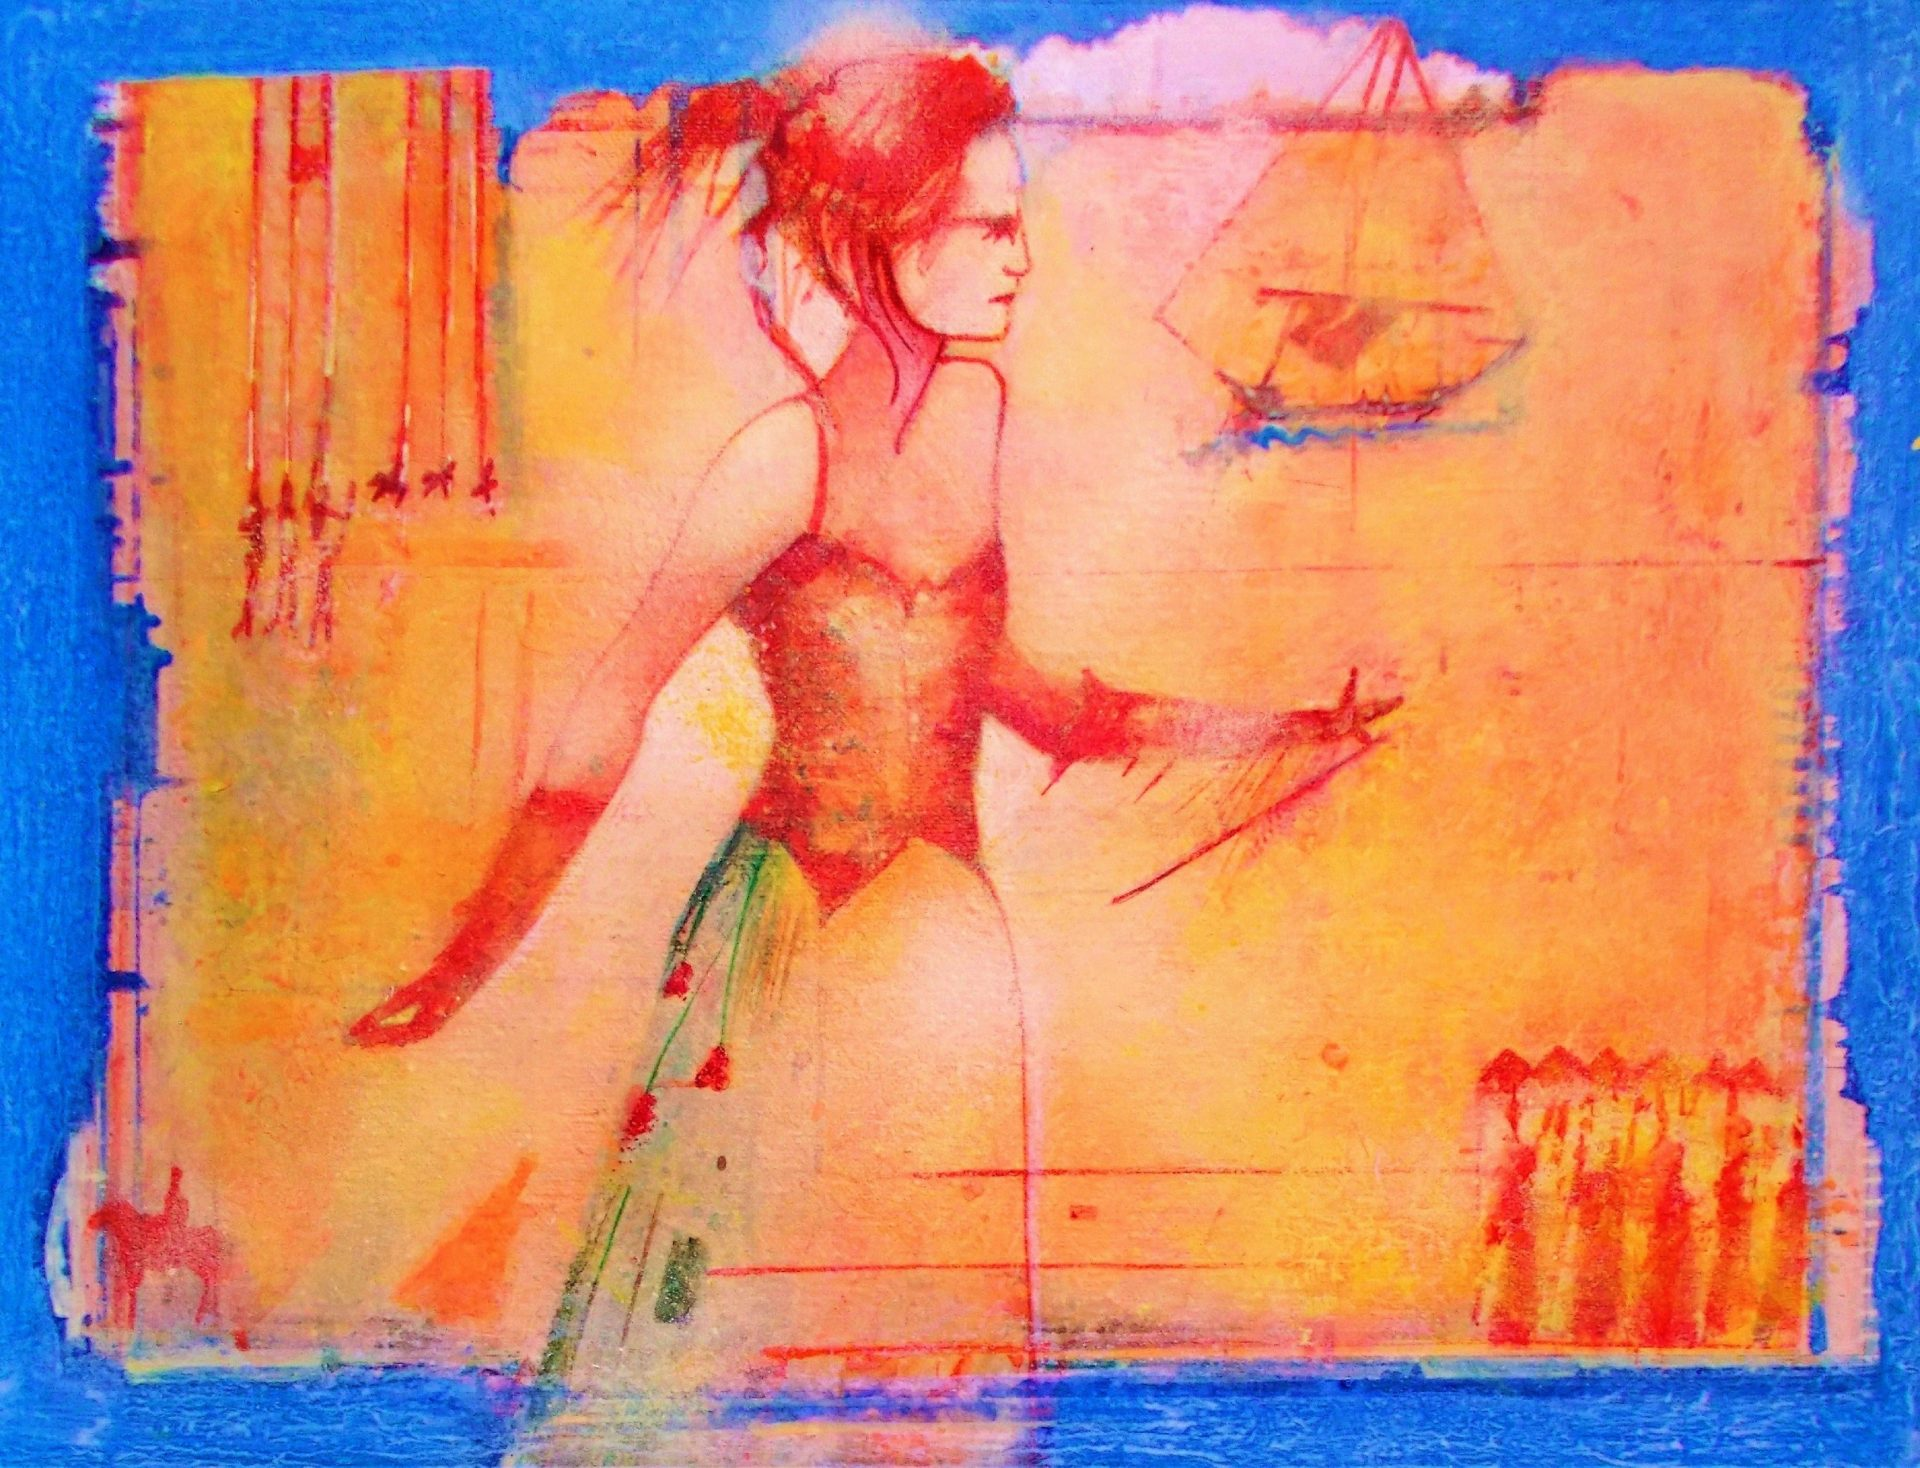 the Puppeteer, Acrylic on Canvas, 16in x 12in by Gerard Tunney £450